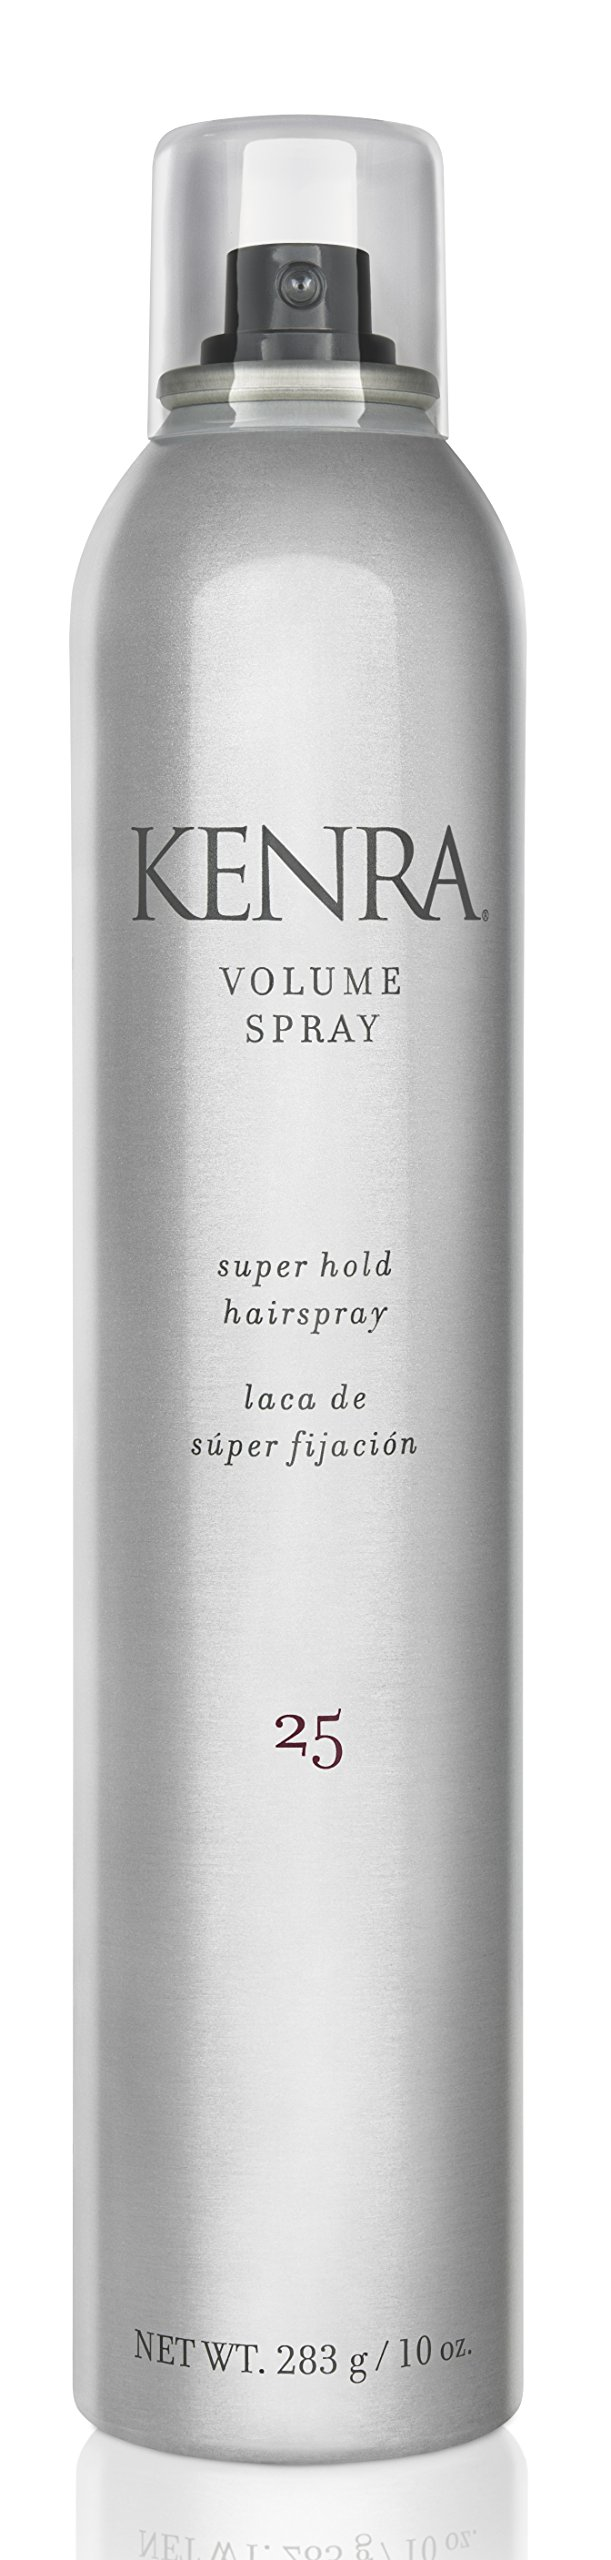 Kenra Volume Spray #25, 55% VOC, 10-Ounce